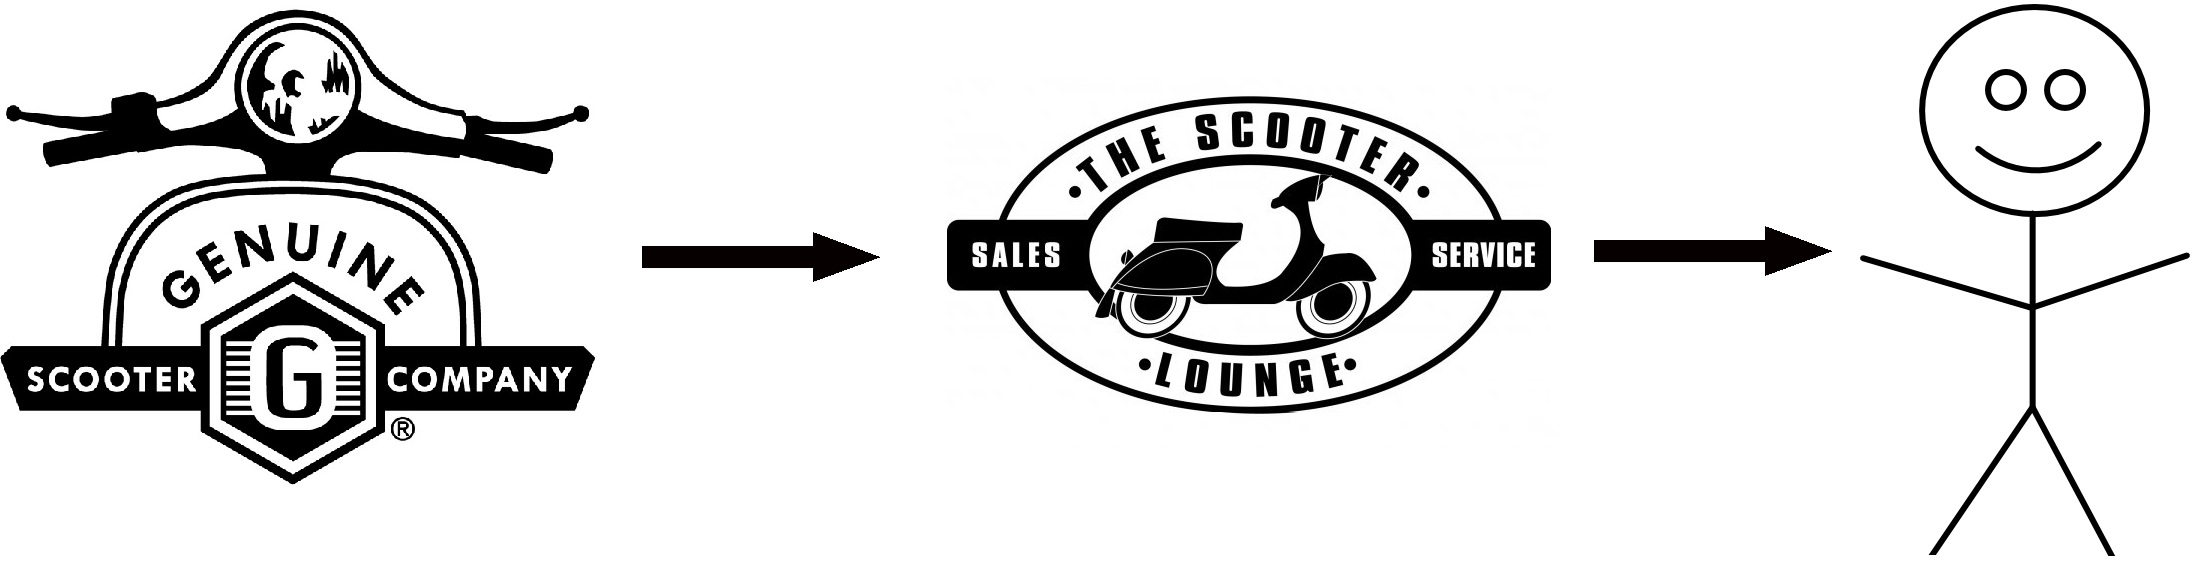 Genuine to Scooter Lounge Online to Customer